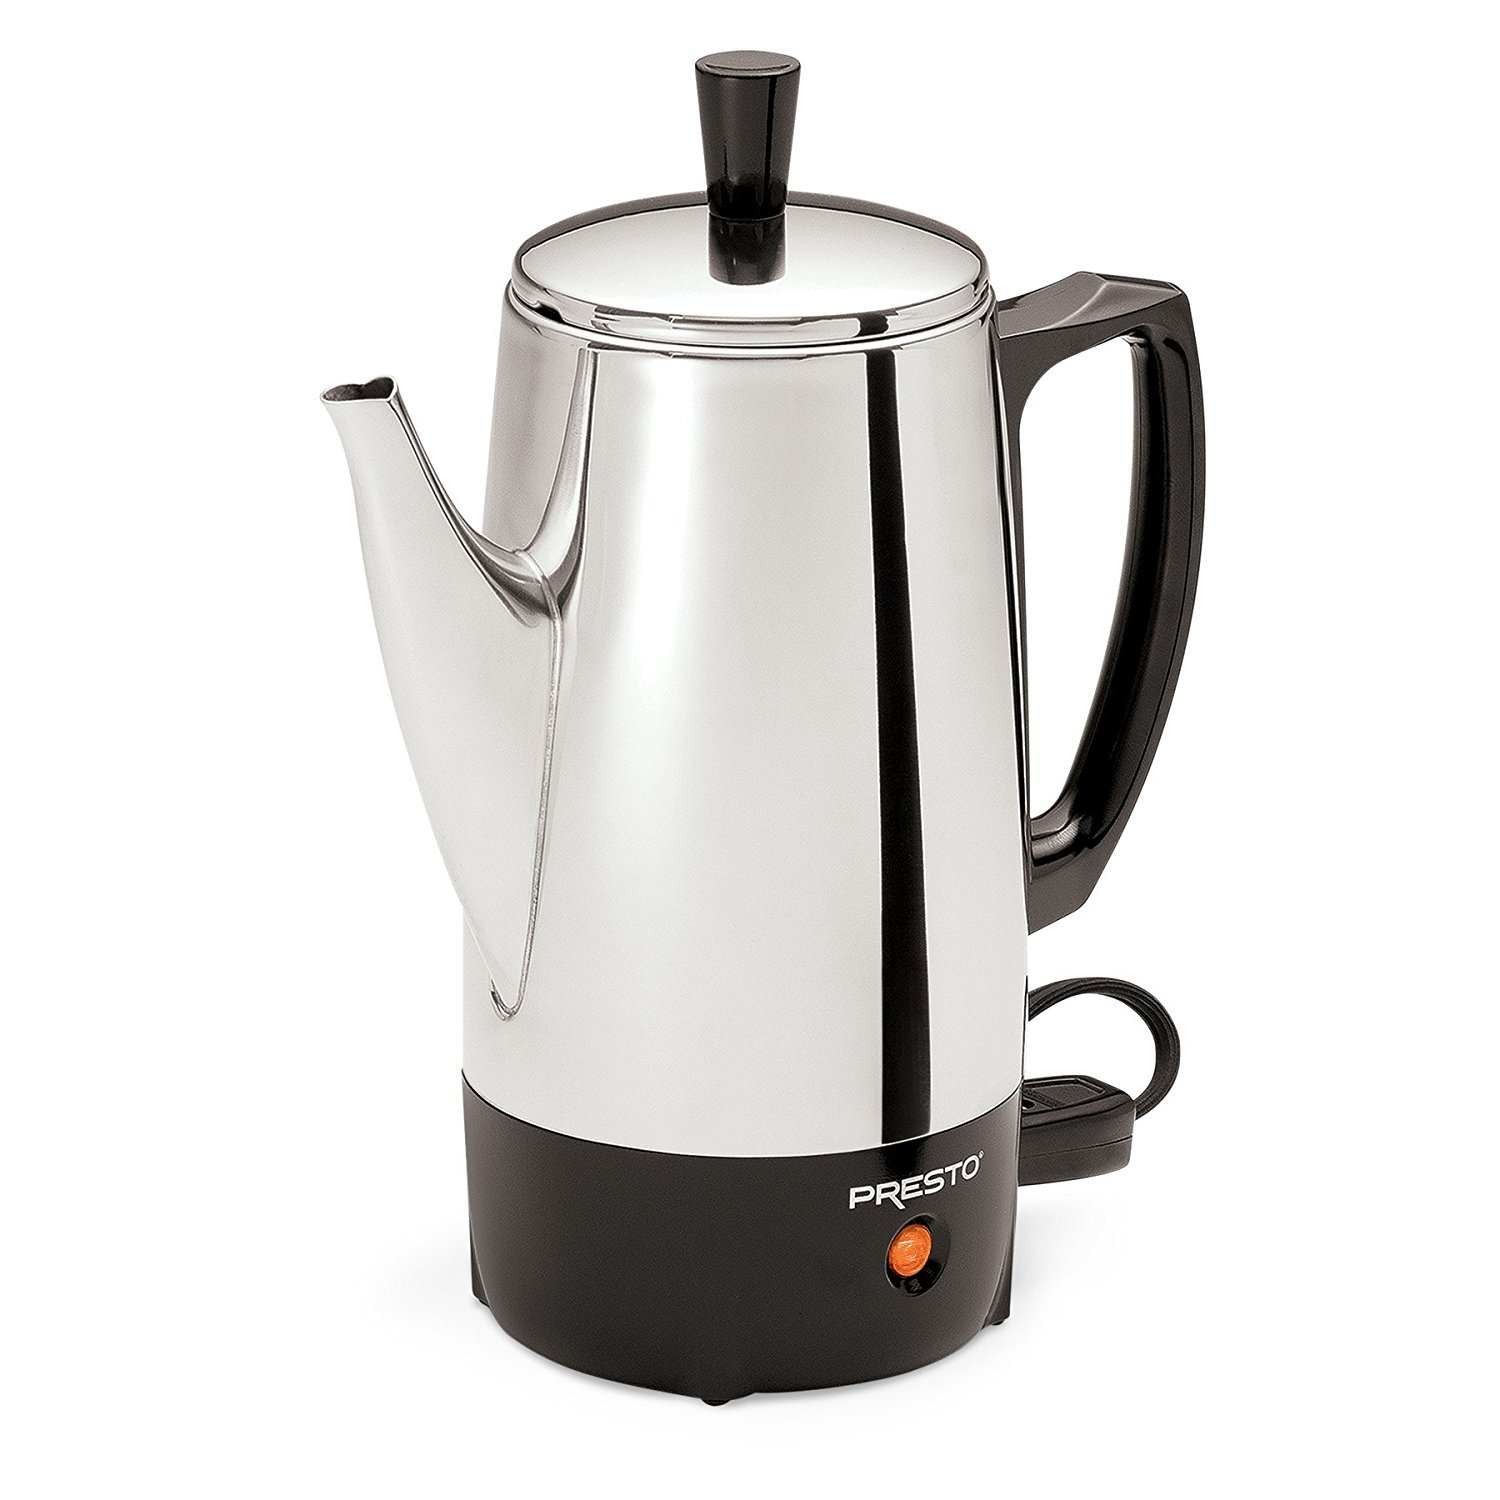 Presto 02822 6-Cup Stainless-Steel Coffee Percolator (4)